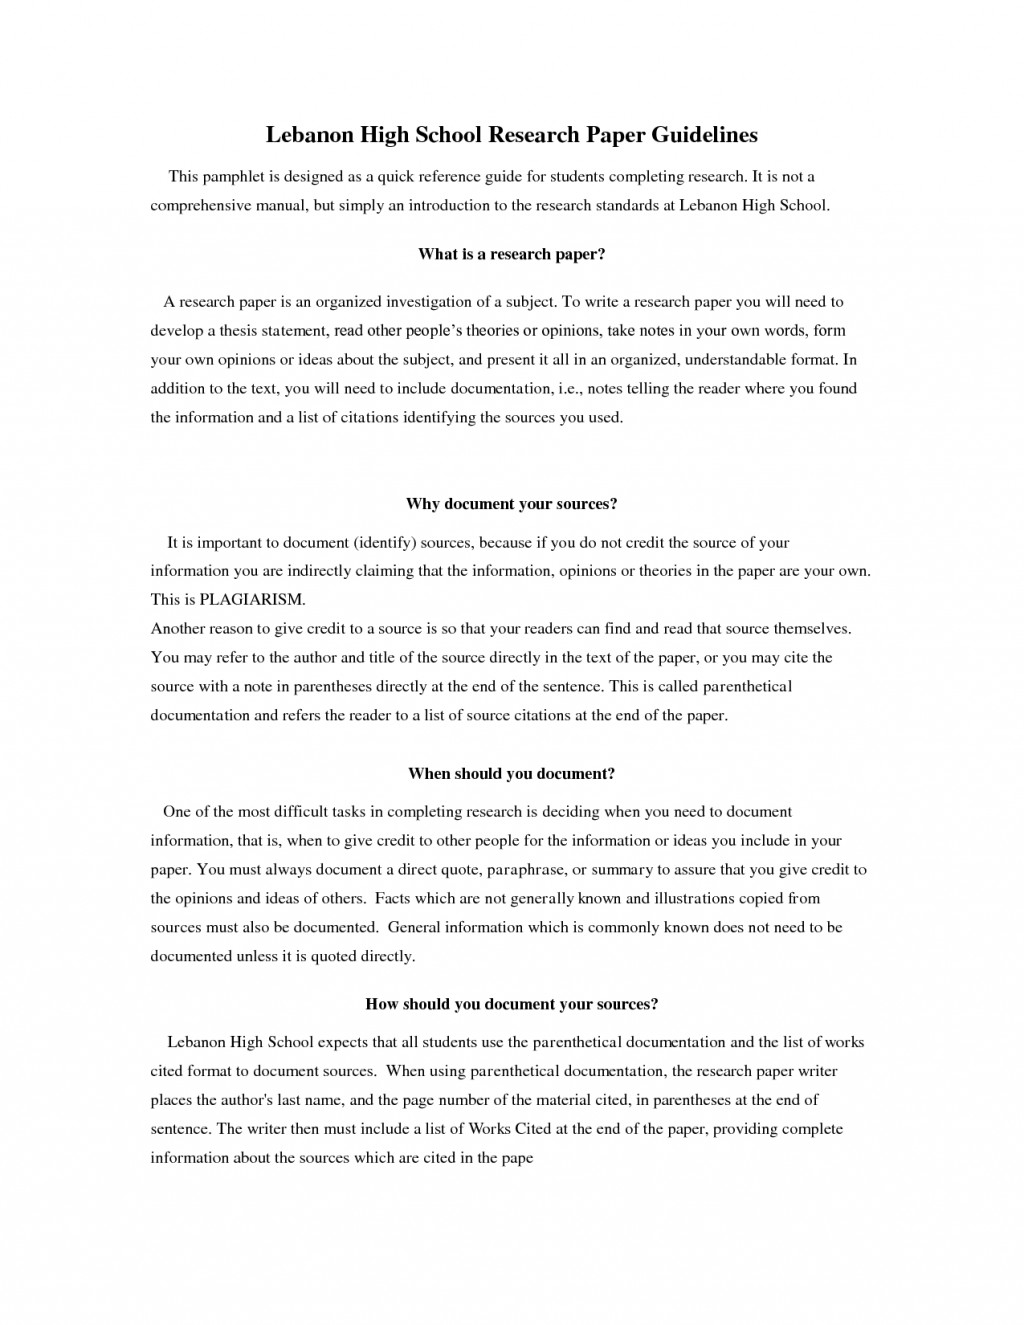 024 Research Paper Brilliant Ideas Of Effective Essay Tips About Good Topic For Nice Topics Papers High School Phenomenal Middle Questions Science Civil War Large